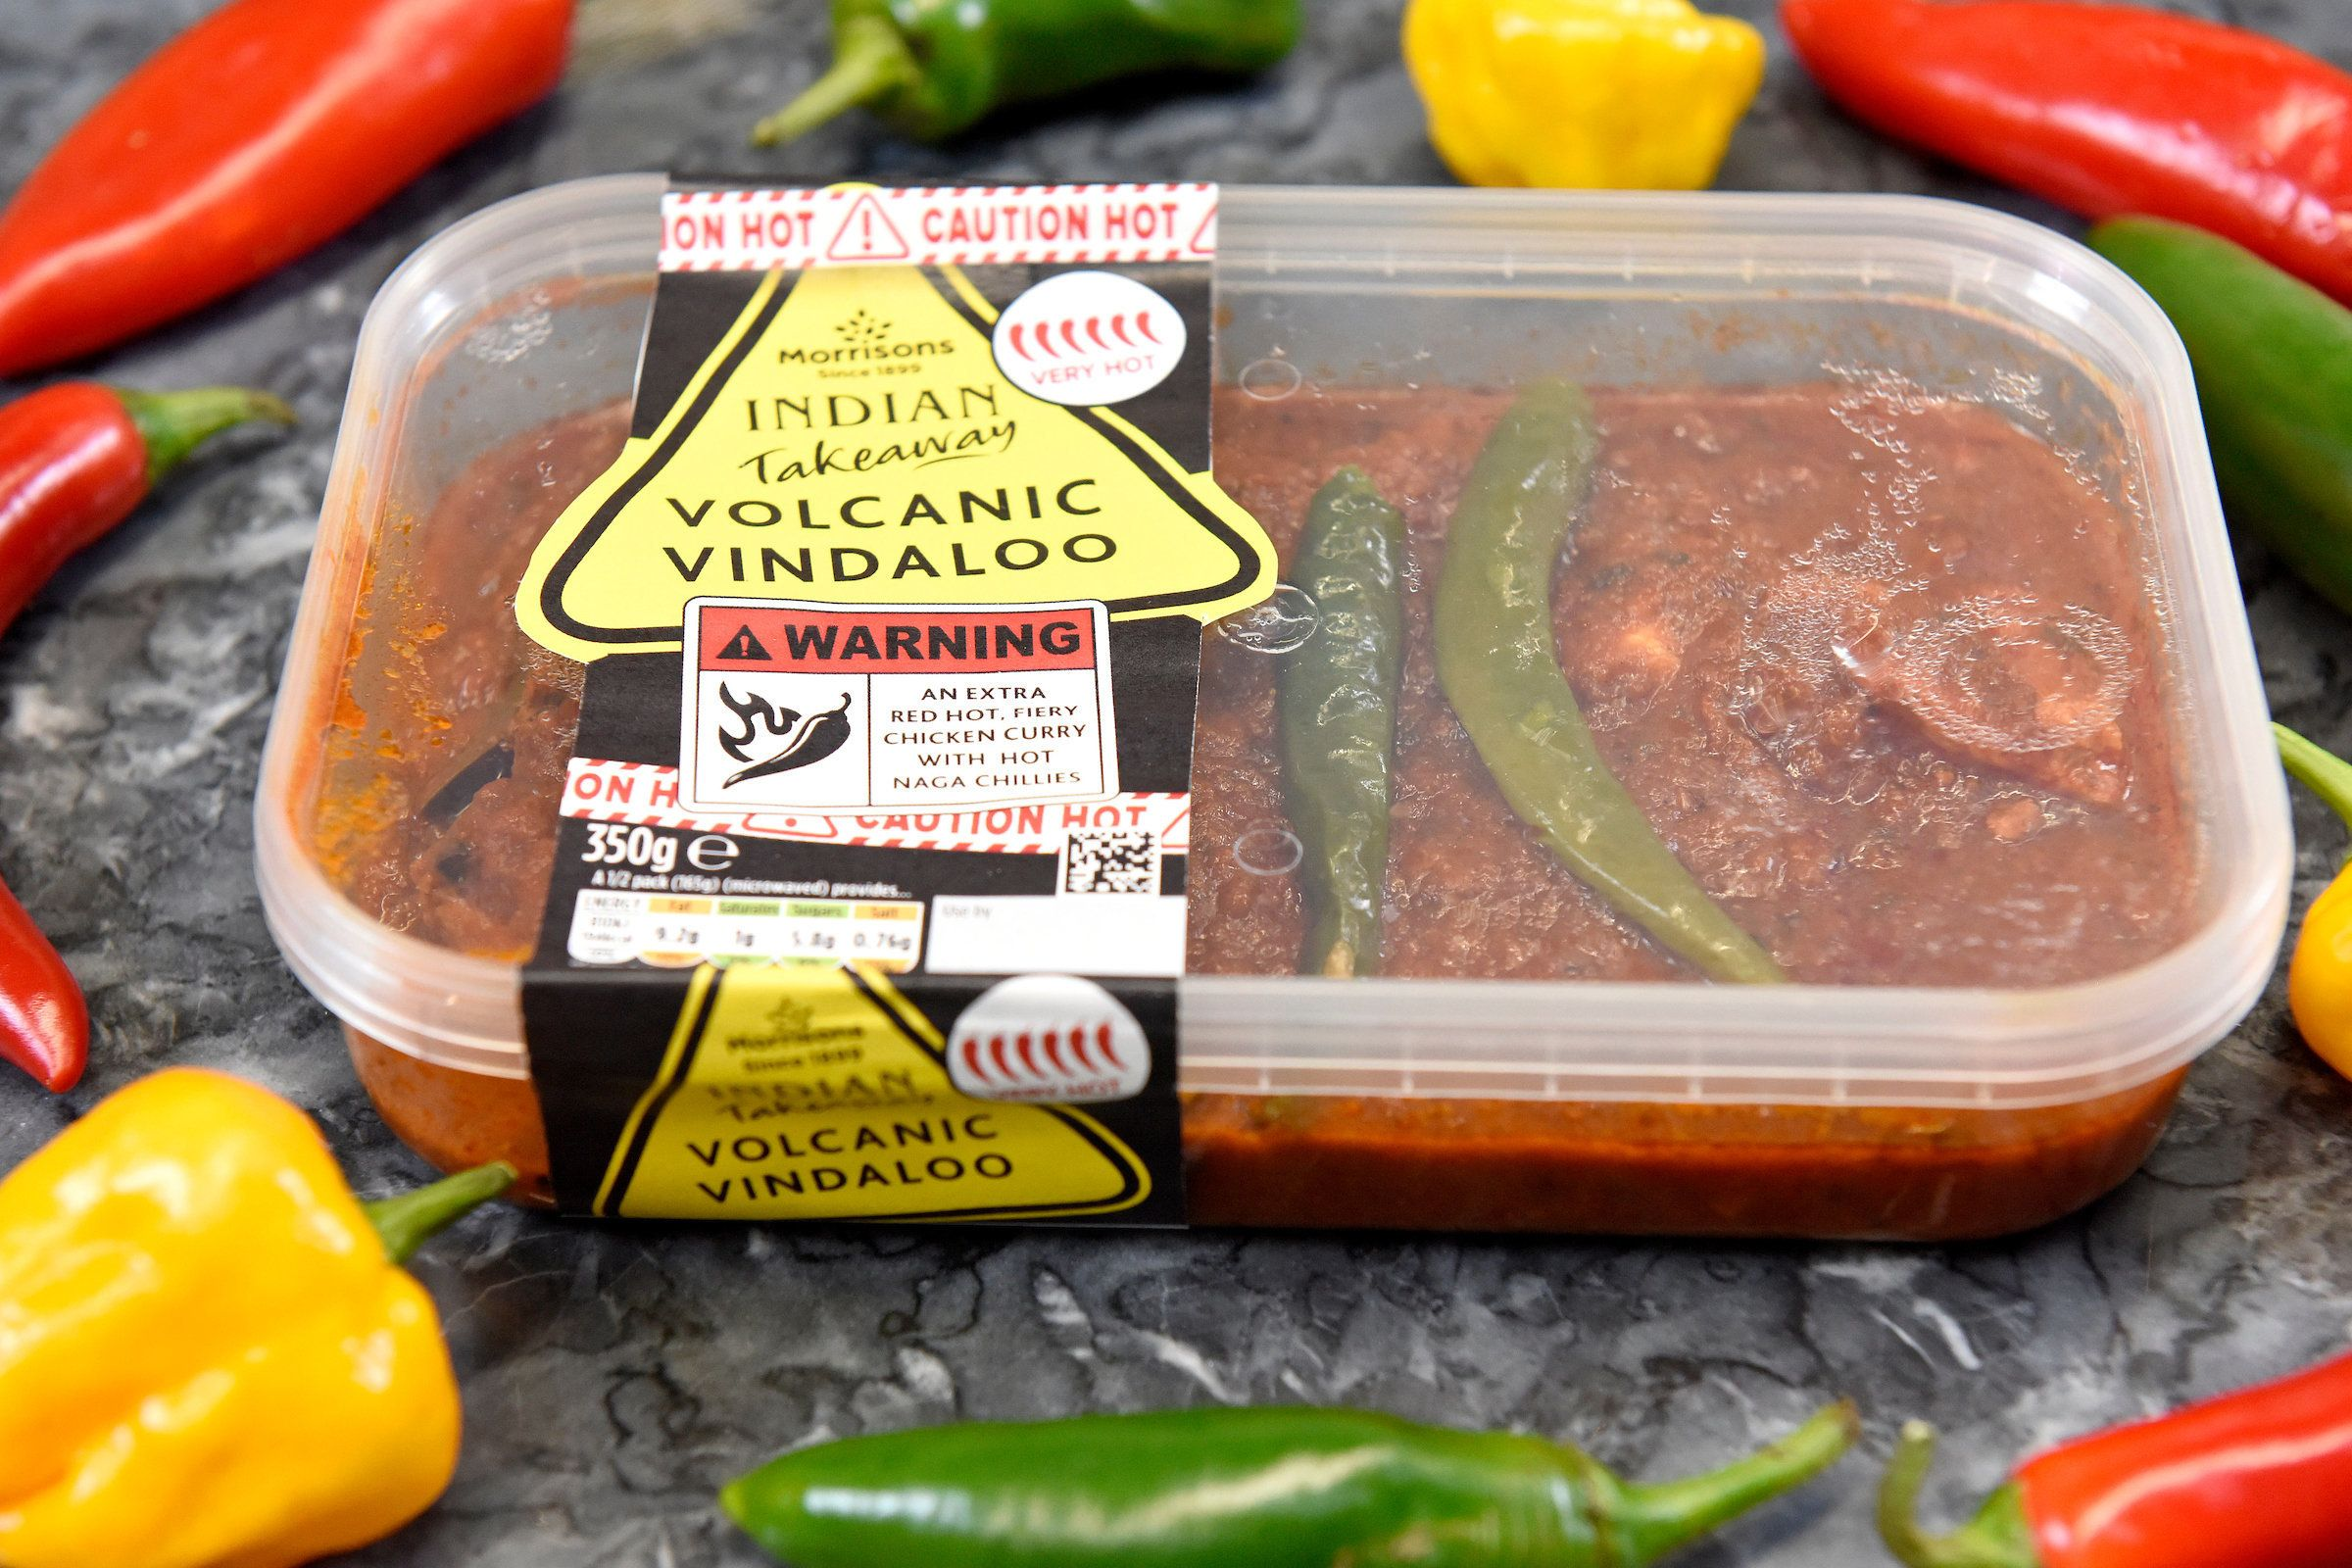 The supermarket curry so hot it comes with a safety warning